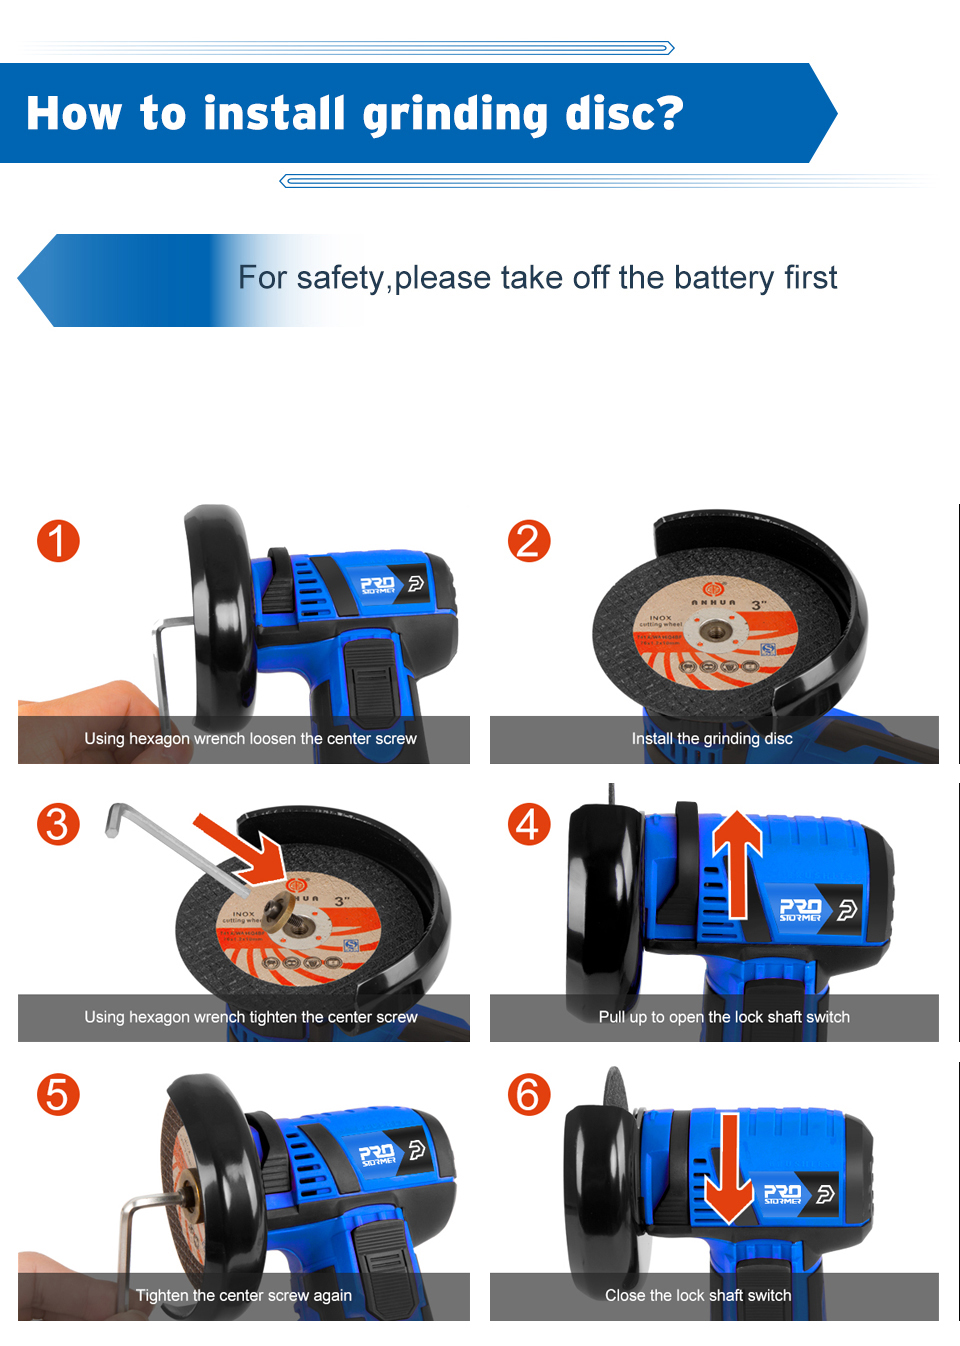 how to install grinding disc